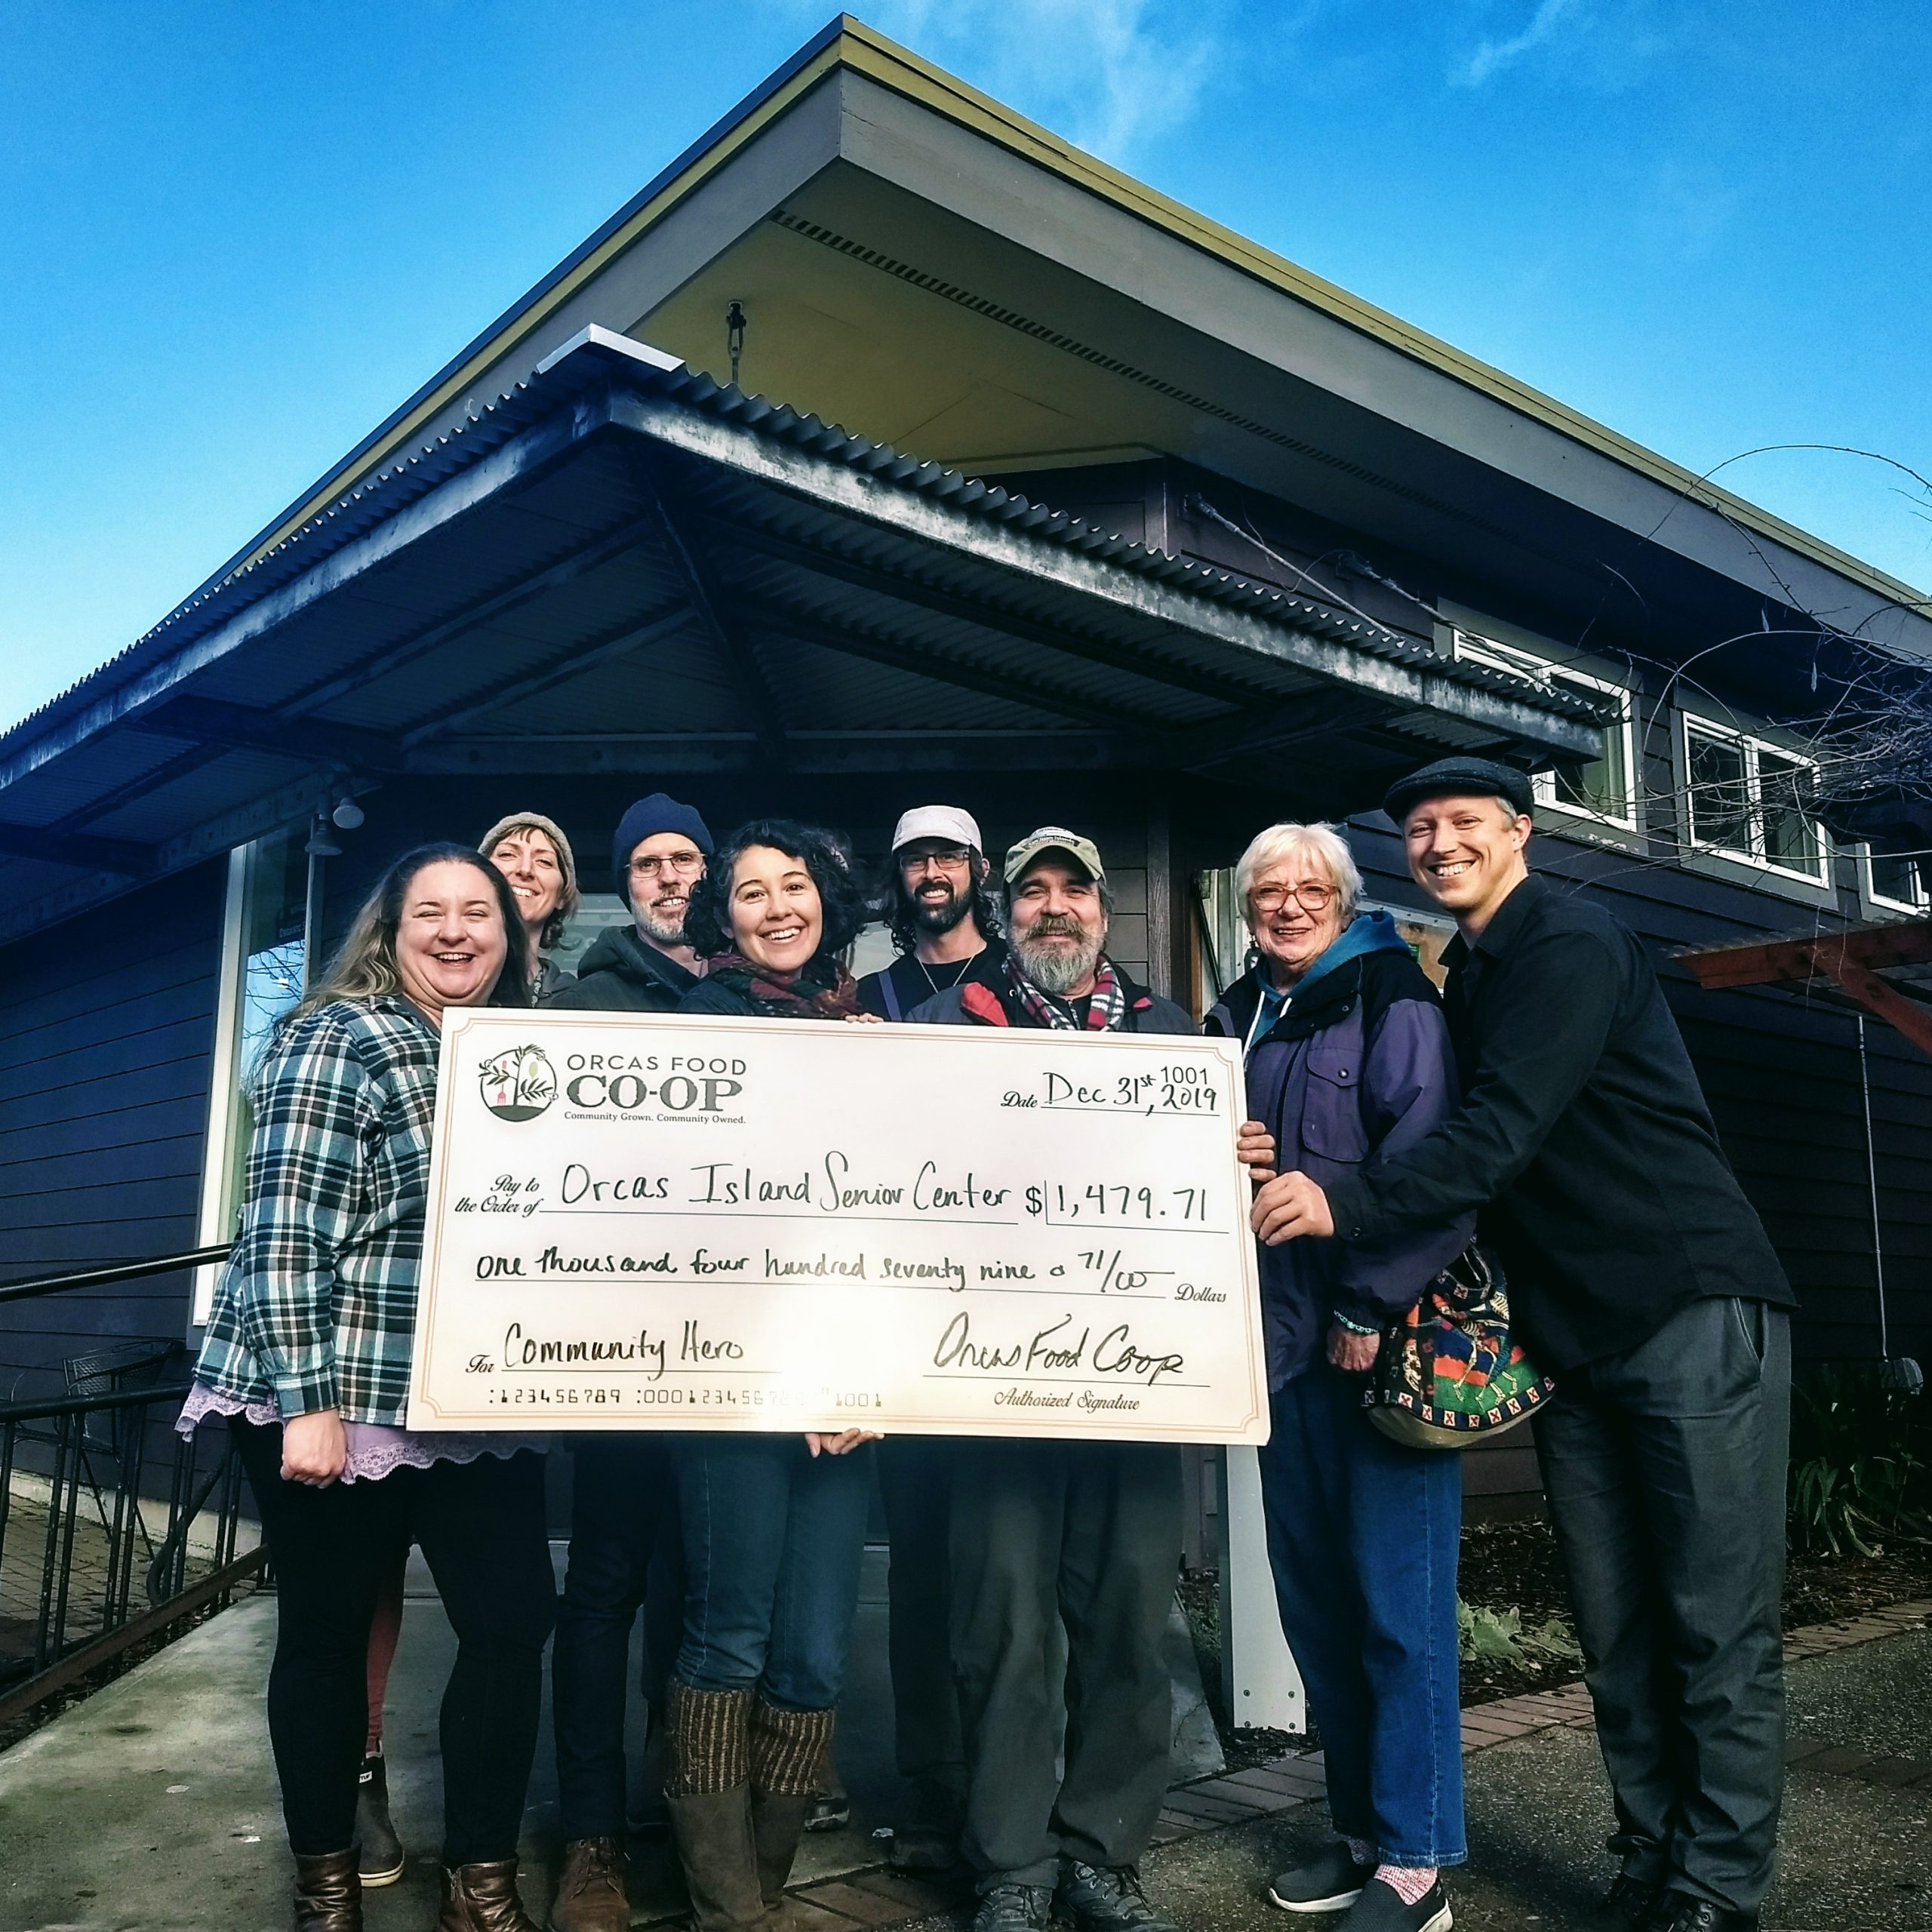 The Orcas Food Co-op's Community Hero Program Recipients